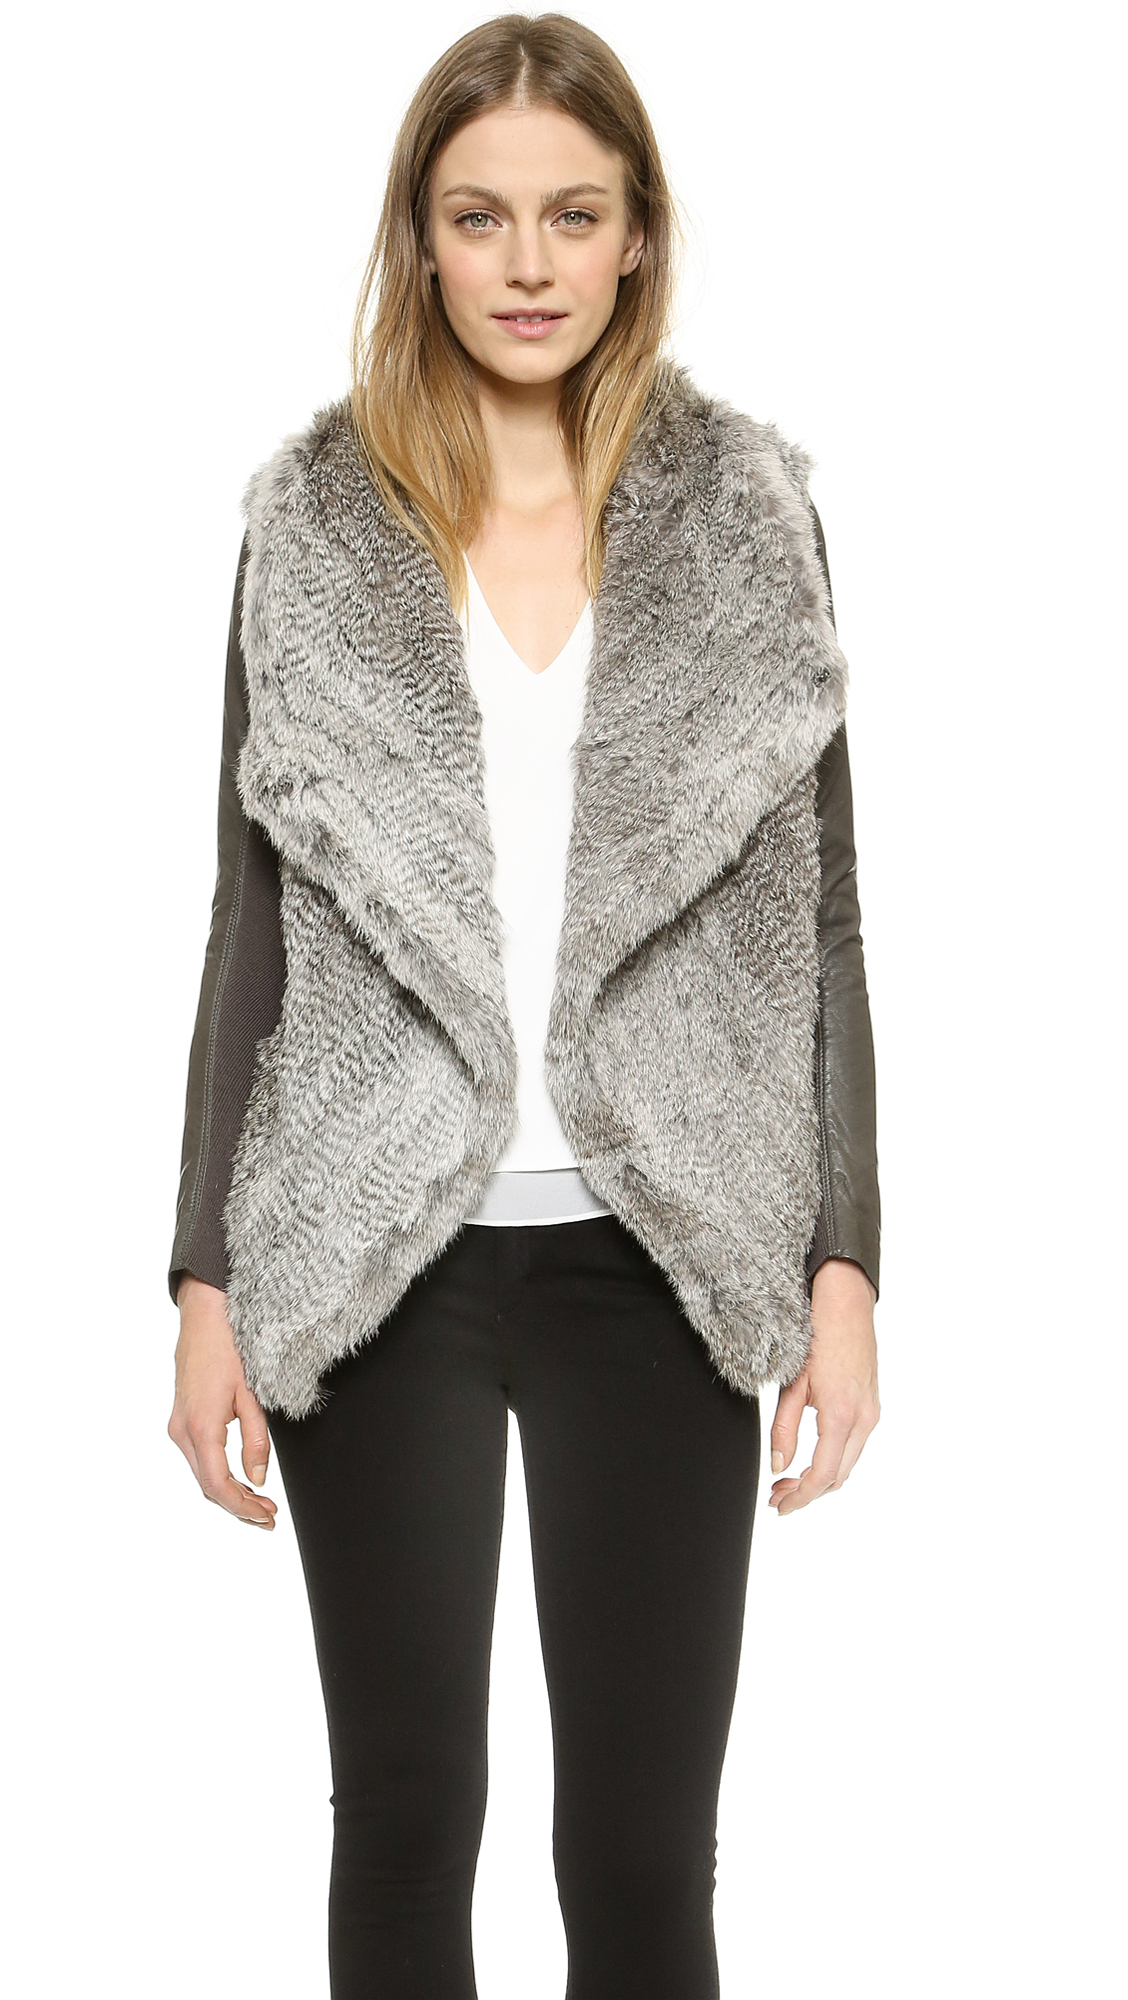 """Our Black Fur Jacket with leather sleeves """"Vogue"""" turns every winter outfit into a real eye-catcher. The combination of super fluffy fox fur and slim leather sleeves guarantees that this jacket feels incredibly comfortable to wear. Not only can you wear this jacket as an exquisite winter jacket, but also a glamorous fur vest."""